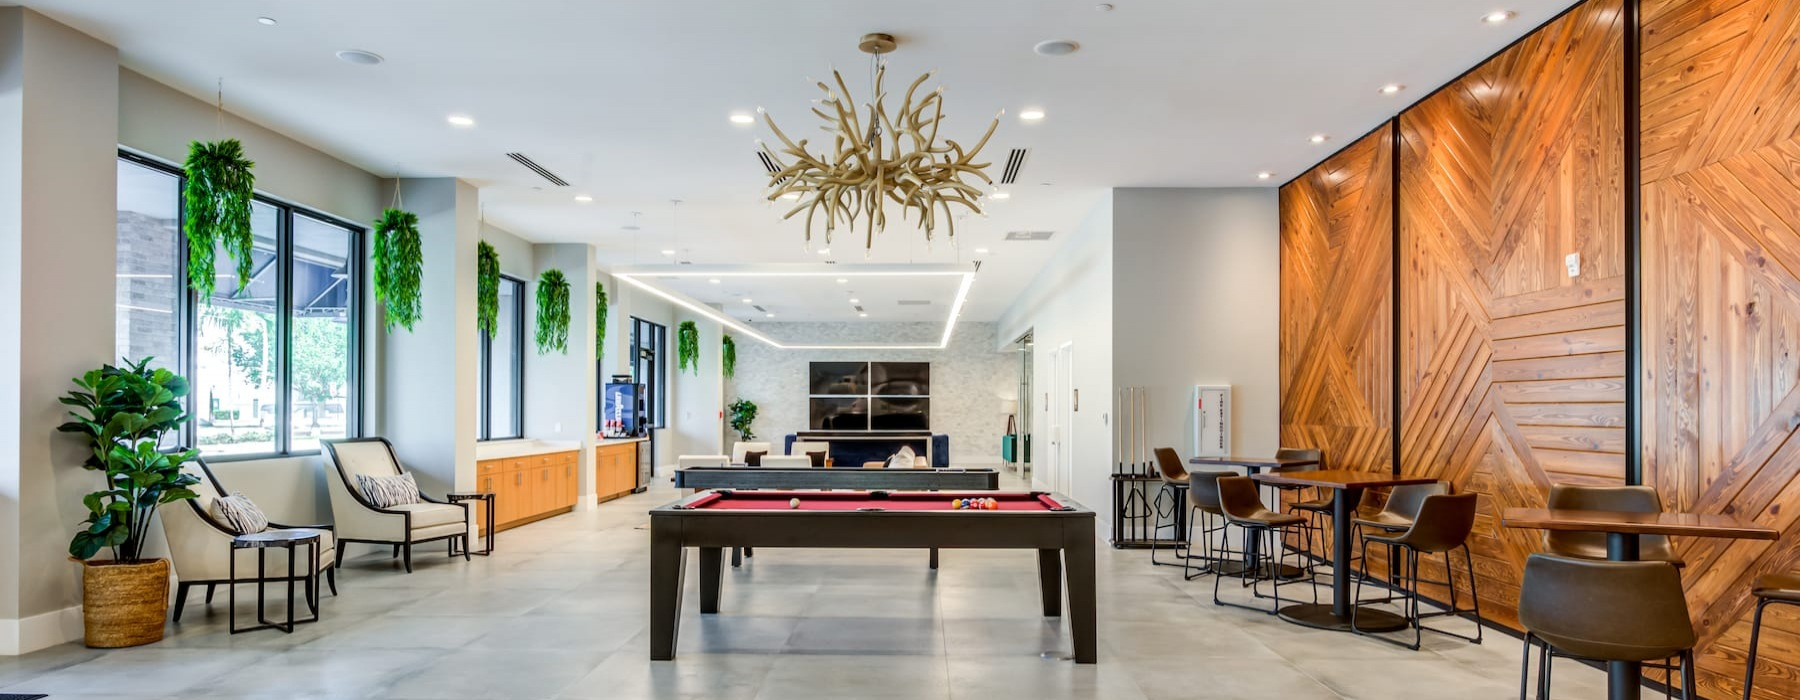 spacious clubroom with ample seating, modern decor & views of surrounding landscaping